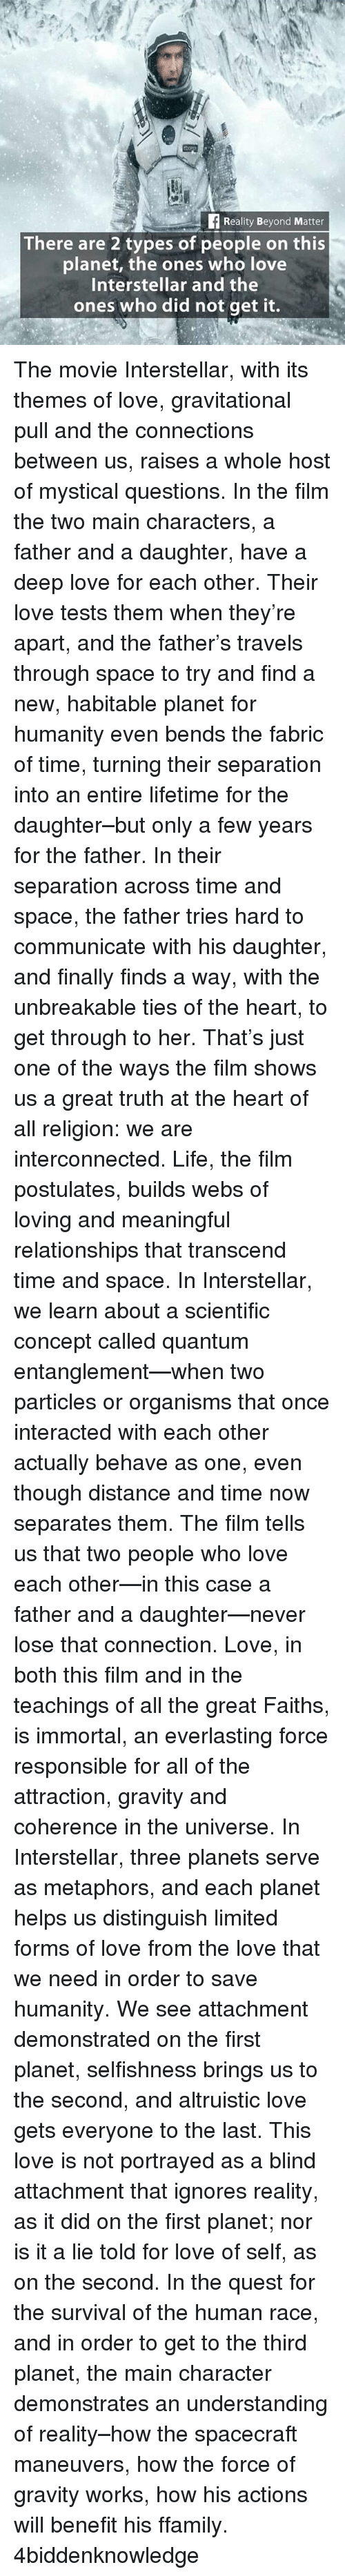 Interstellar: Reality Beyond Matter  There are 2 types of people on this  planet, the ones who love  Interstellar and the  ones who did not get it. The movie Interstellar, with its themes of love, gravitational pull and the connections between us, raises a whole host of mystical questions. In the film the two main characters, a father and a daughter, have a deep love for each other. Their love tests them when they're apart, and the father's travels through space to try and find a new, habitable planet for humanity even bends the fabric of time, turning their separation into an entire lifetime for the daughter–but only a few years for the father. In their separation across time and space, the father tries hard to communicate with his daughter, and finally finds a way, with the unbreakable ties of the heart, to get through to her. That's just one of the ways the film shows us a great truth at the heart of all religion: we are interconnected. Life, the film postulates, builds webs of loving and meaningful relationships that transcend time and space. In Interstellar, we learn about a scientific concept called quantum entanglement—when two particles or organisms that once interacted with each other actually behave as one, even though distance and time now separates them. The film tells us that two people who love each other—in this case a father and a daughter—never lose that connection. Love, in both this film and in the teachings of all the great Faiths, is immortal, an everlasting force responsible for all of the attraction, gravity and coherence in the universe. In Interstellar, three planets serve as metaphors, and each planet helps us distinguish limited forms of love from the love that we need in order to save humanity. We see attachment demonstrated on the first planet, selfishness brings us to the second, and altruistic love gets everyone to the last. This love is not portrayed as a blind attachment that ignores reality, as it did on the first planet; nor is it 